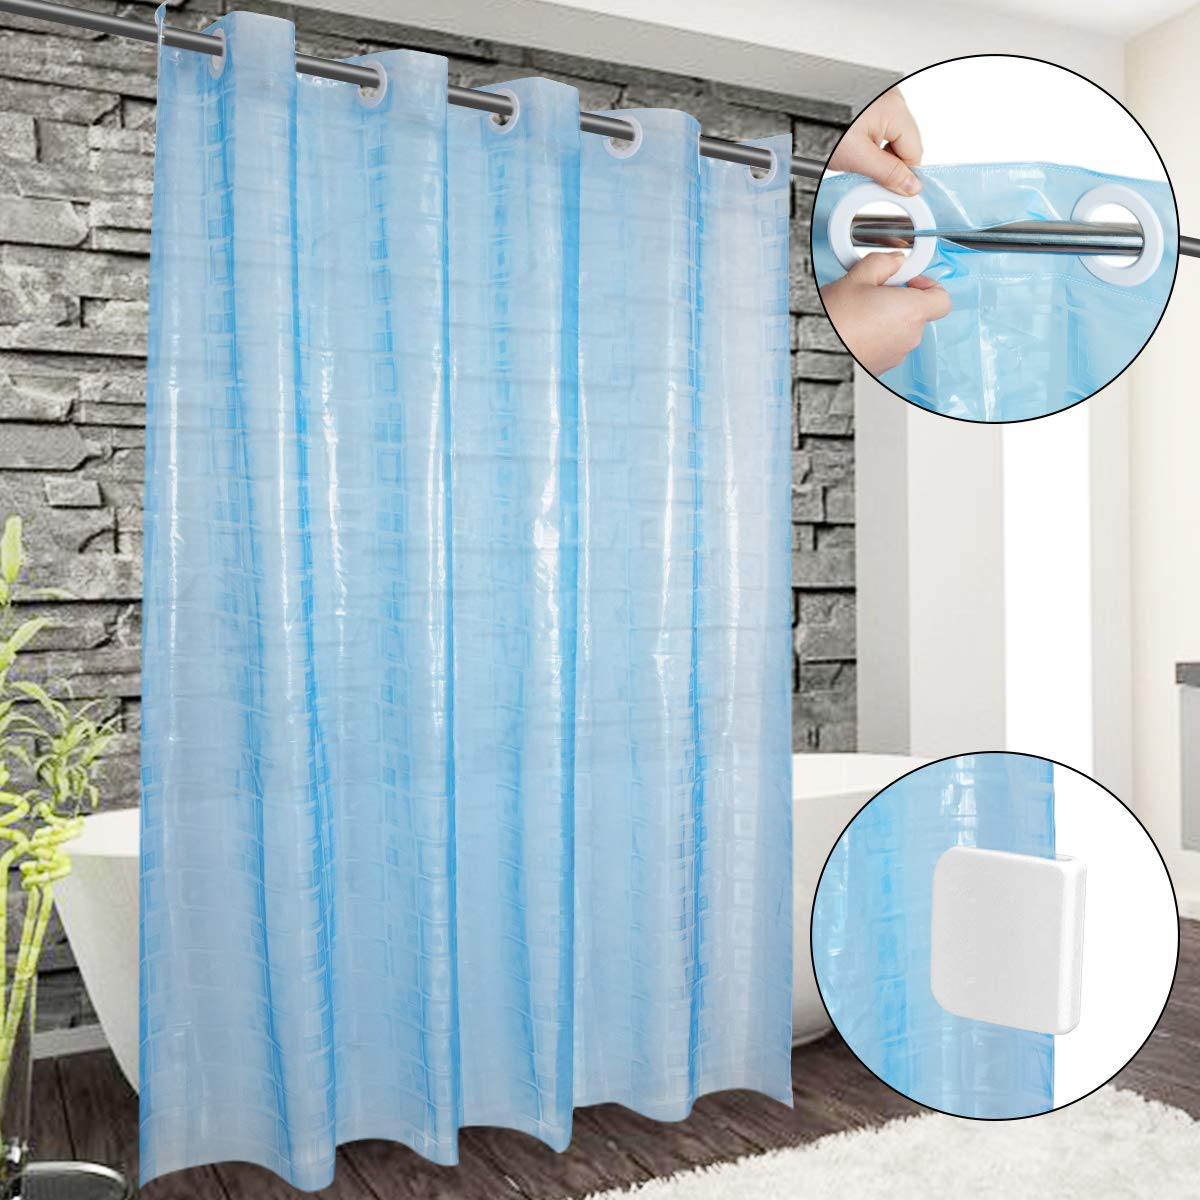 Ringless Shower Curtain, Hookless Waterproof Blue Shower Curtain Liner Long PEVA Shower Curtain with Shower Curtain Splash Clips for Bathroom Hotel Spa,72x74 Inch,- Machine Washable